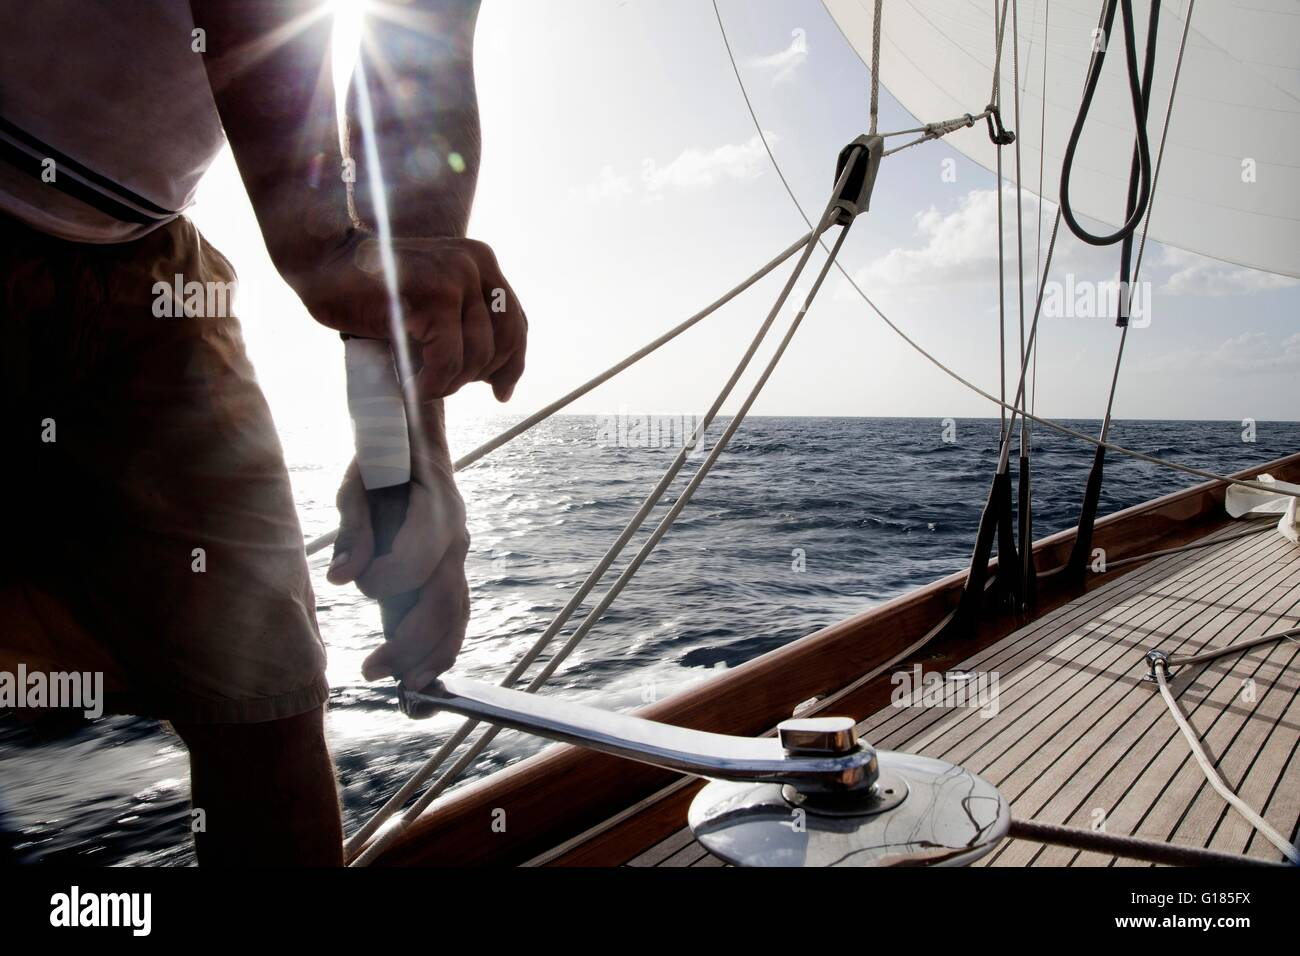 Man turning winch handle on classic sail yacht - Stock Image